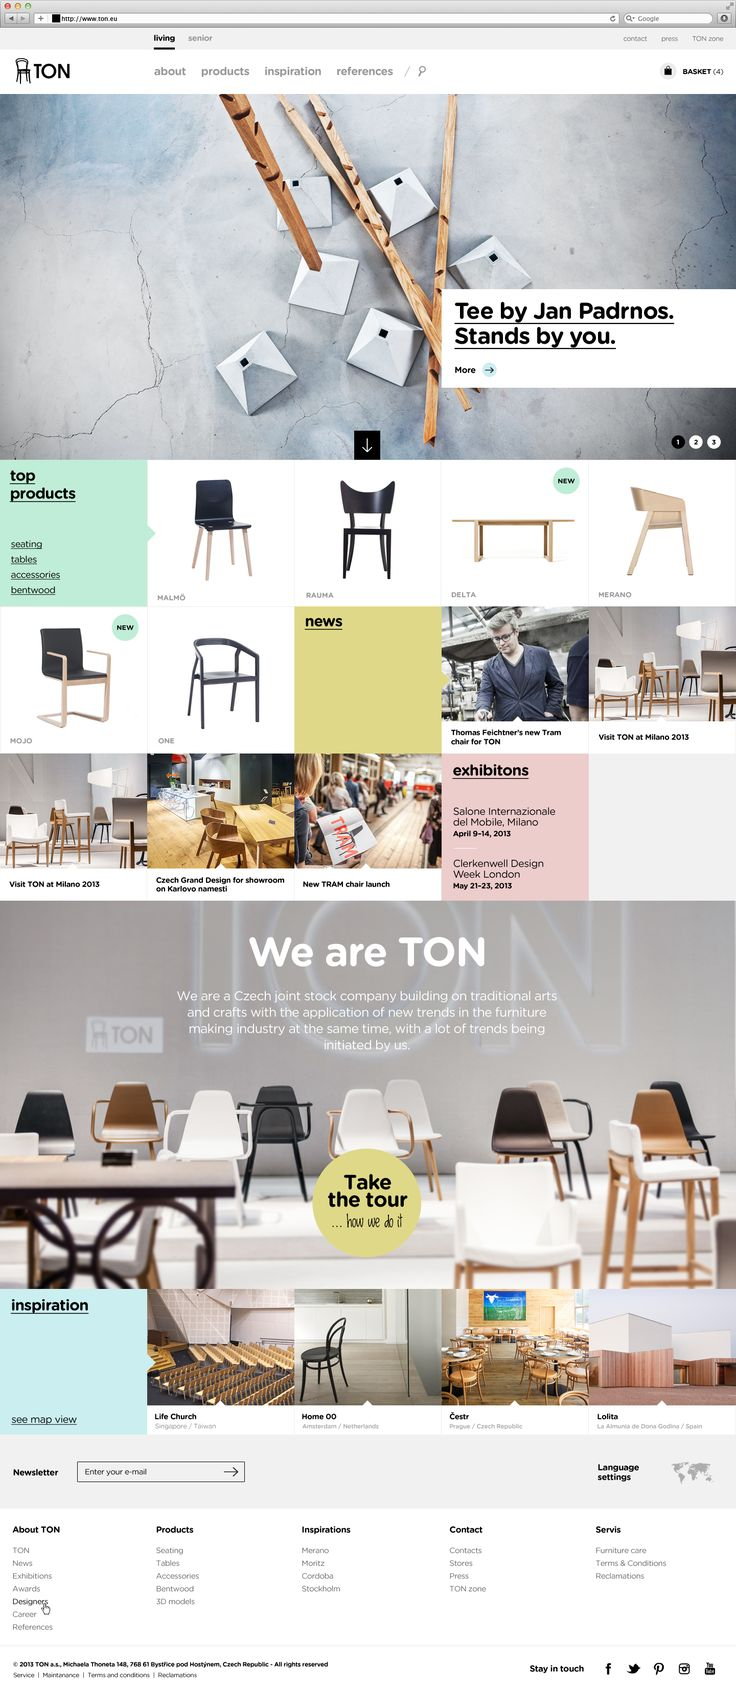 Furniture Design Layout 831 best web design images on pinterest | web layout, website